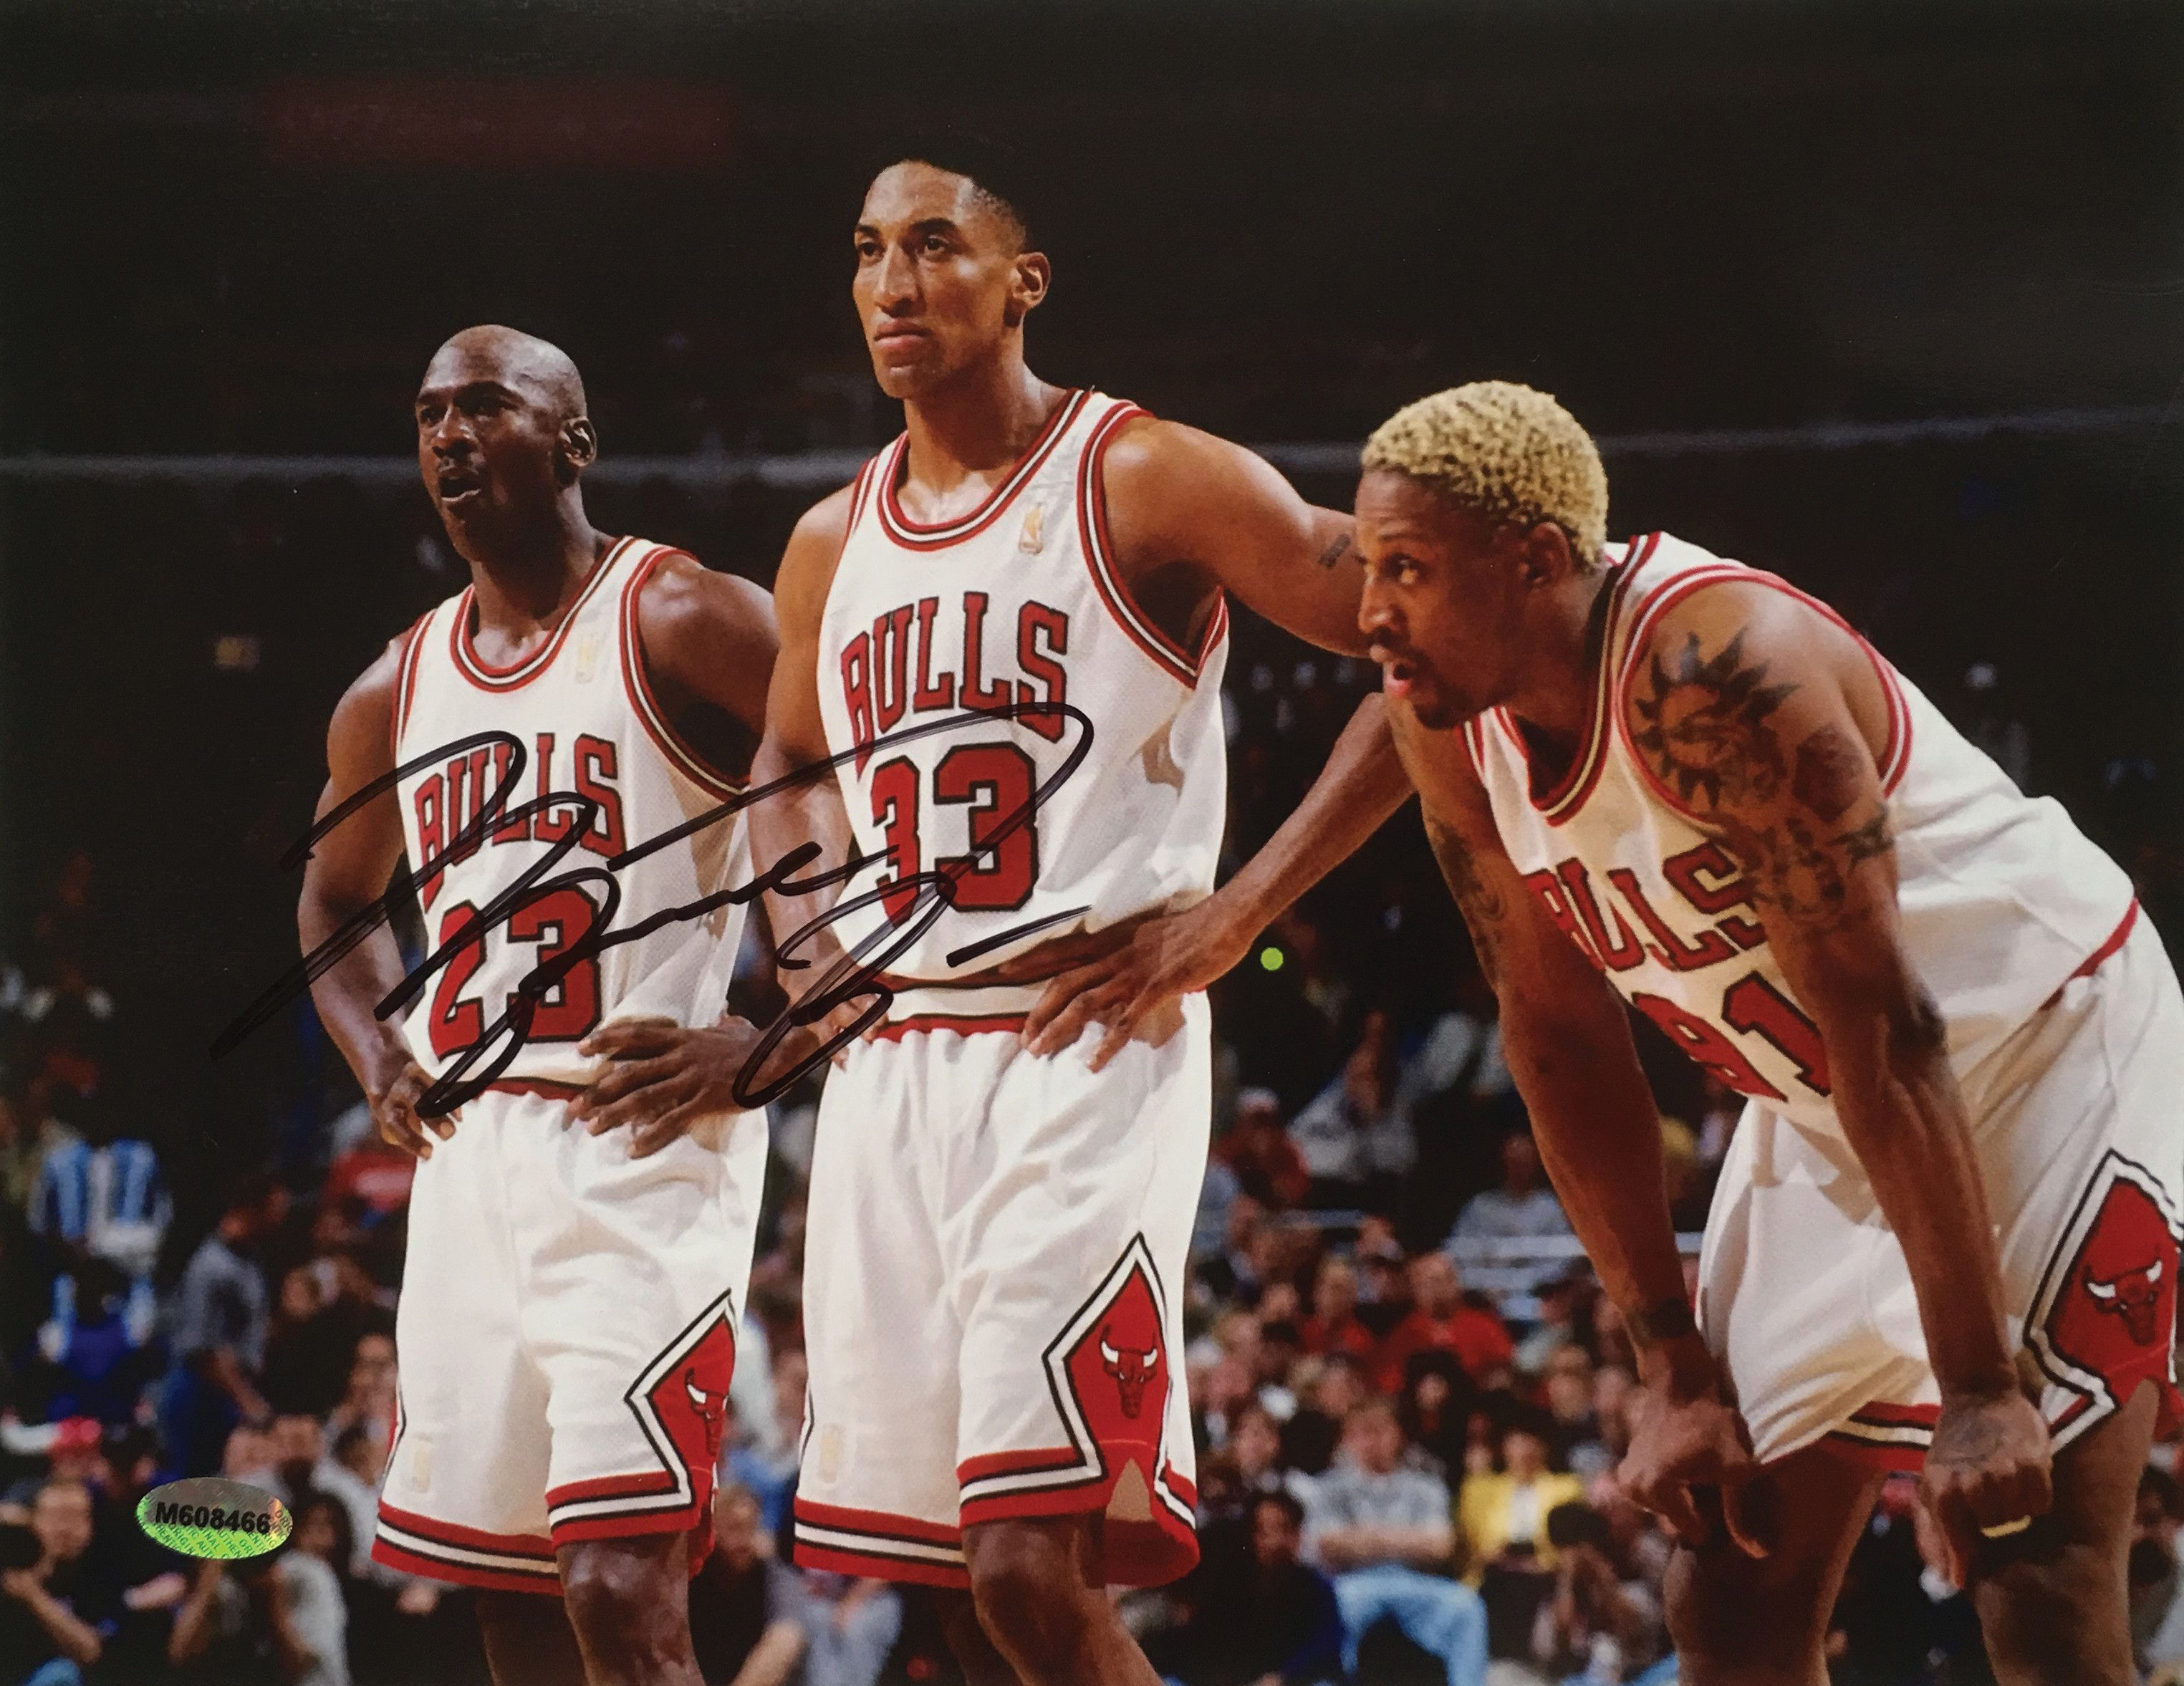 Michael Jordan Chicago Bulls Signed 8.5x11 Photo with Dennis Rodman &  Scottie Pippen